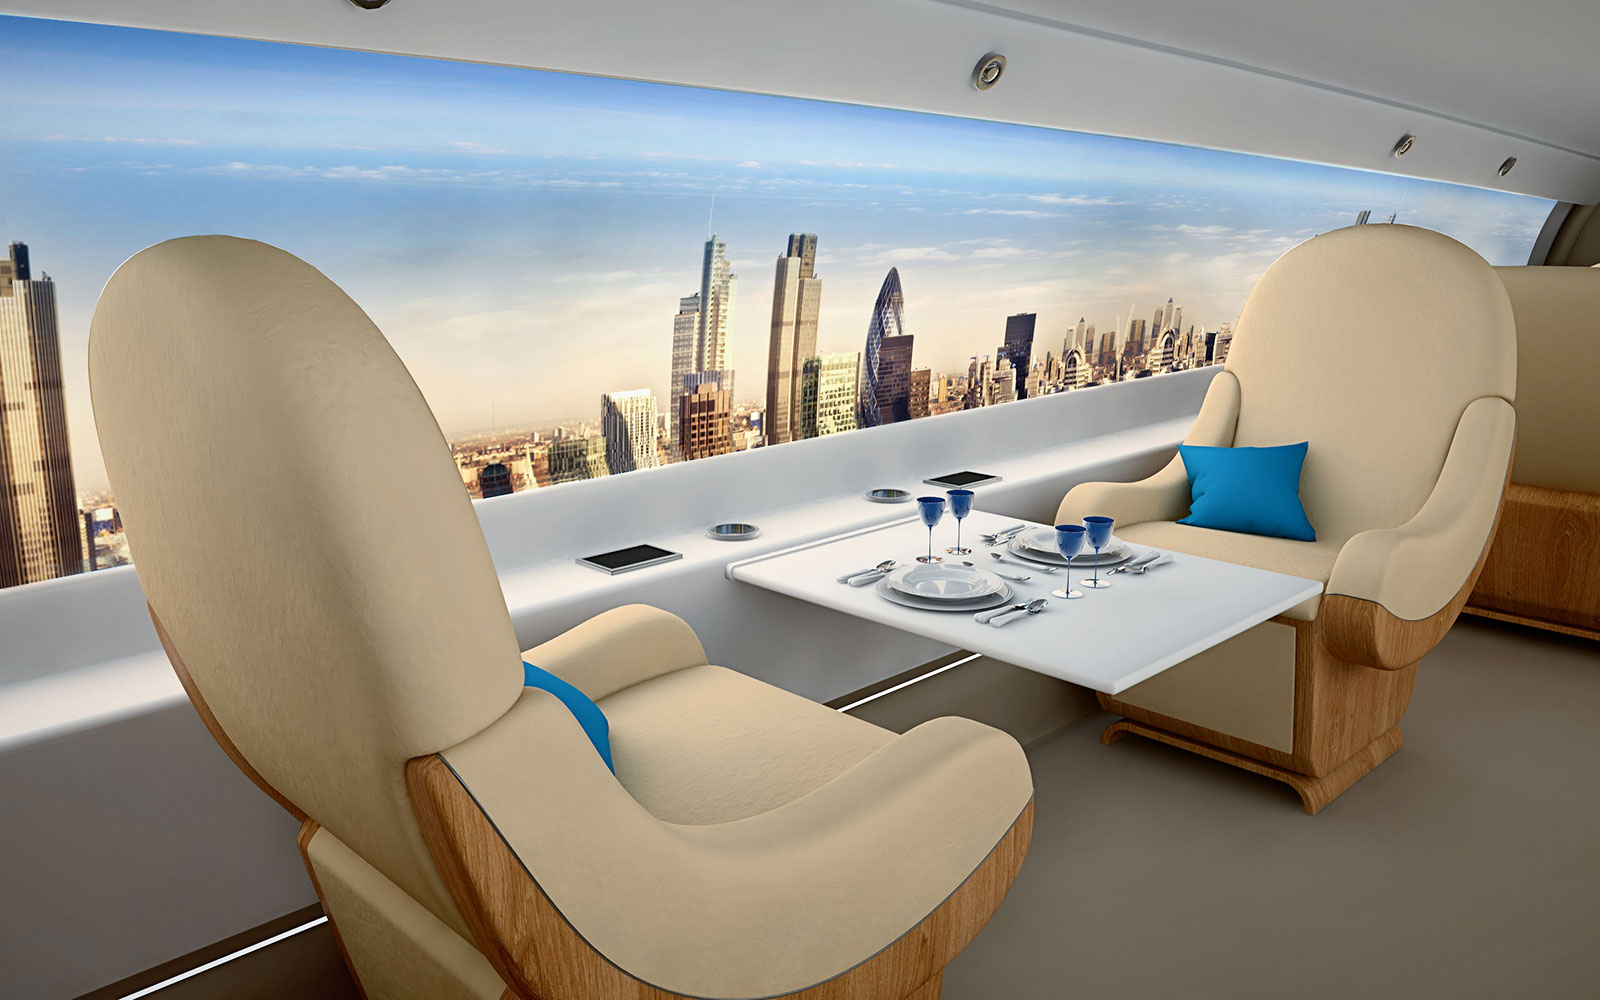 15 Craziest Airplane Cabins of the Future: The Windowless Cabin – by Spike Aerospace